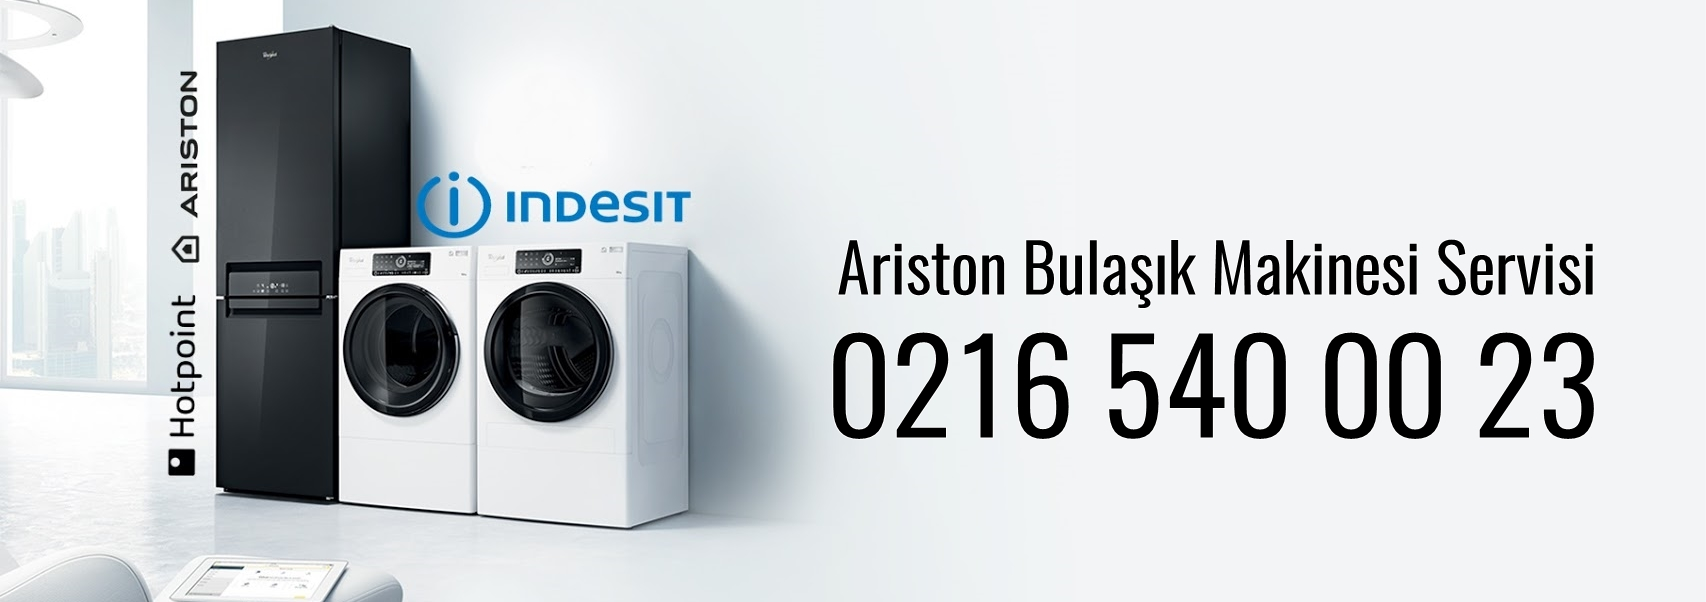 Ariston Bulaşık Makinesi Servisi